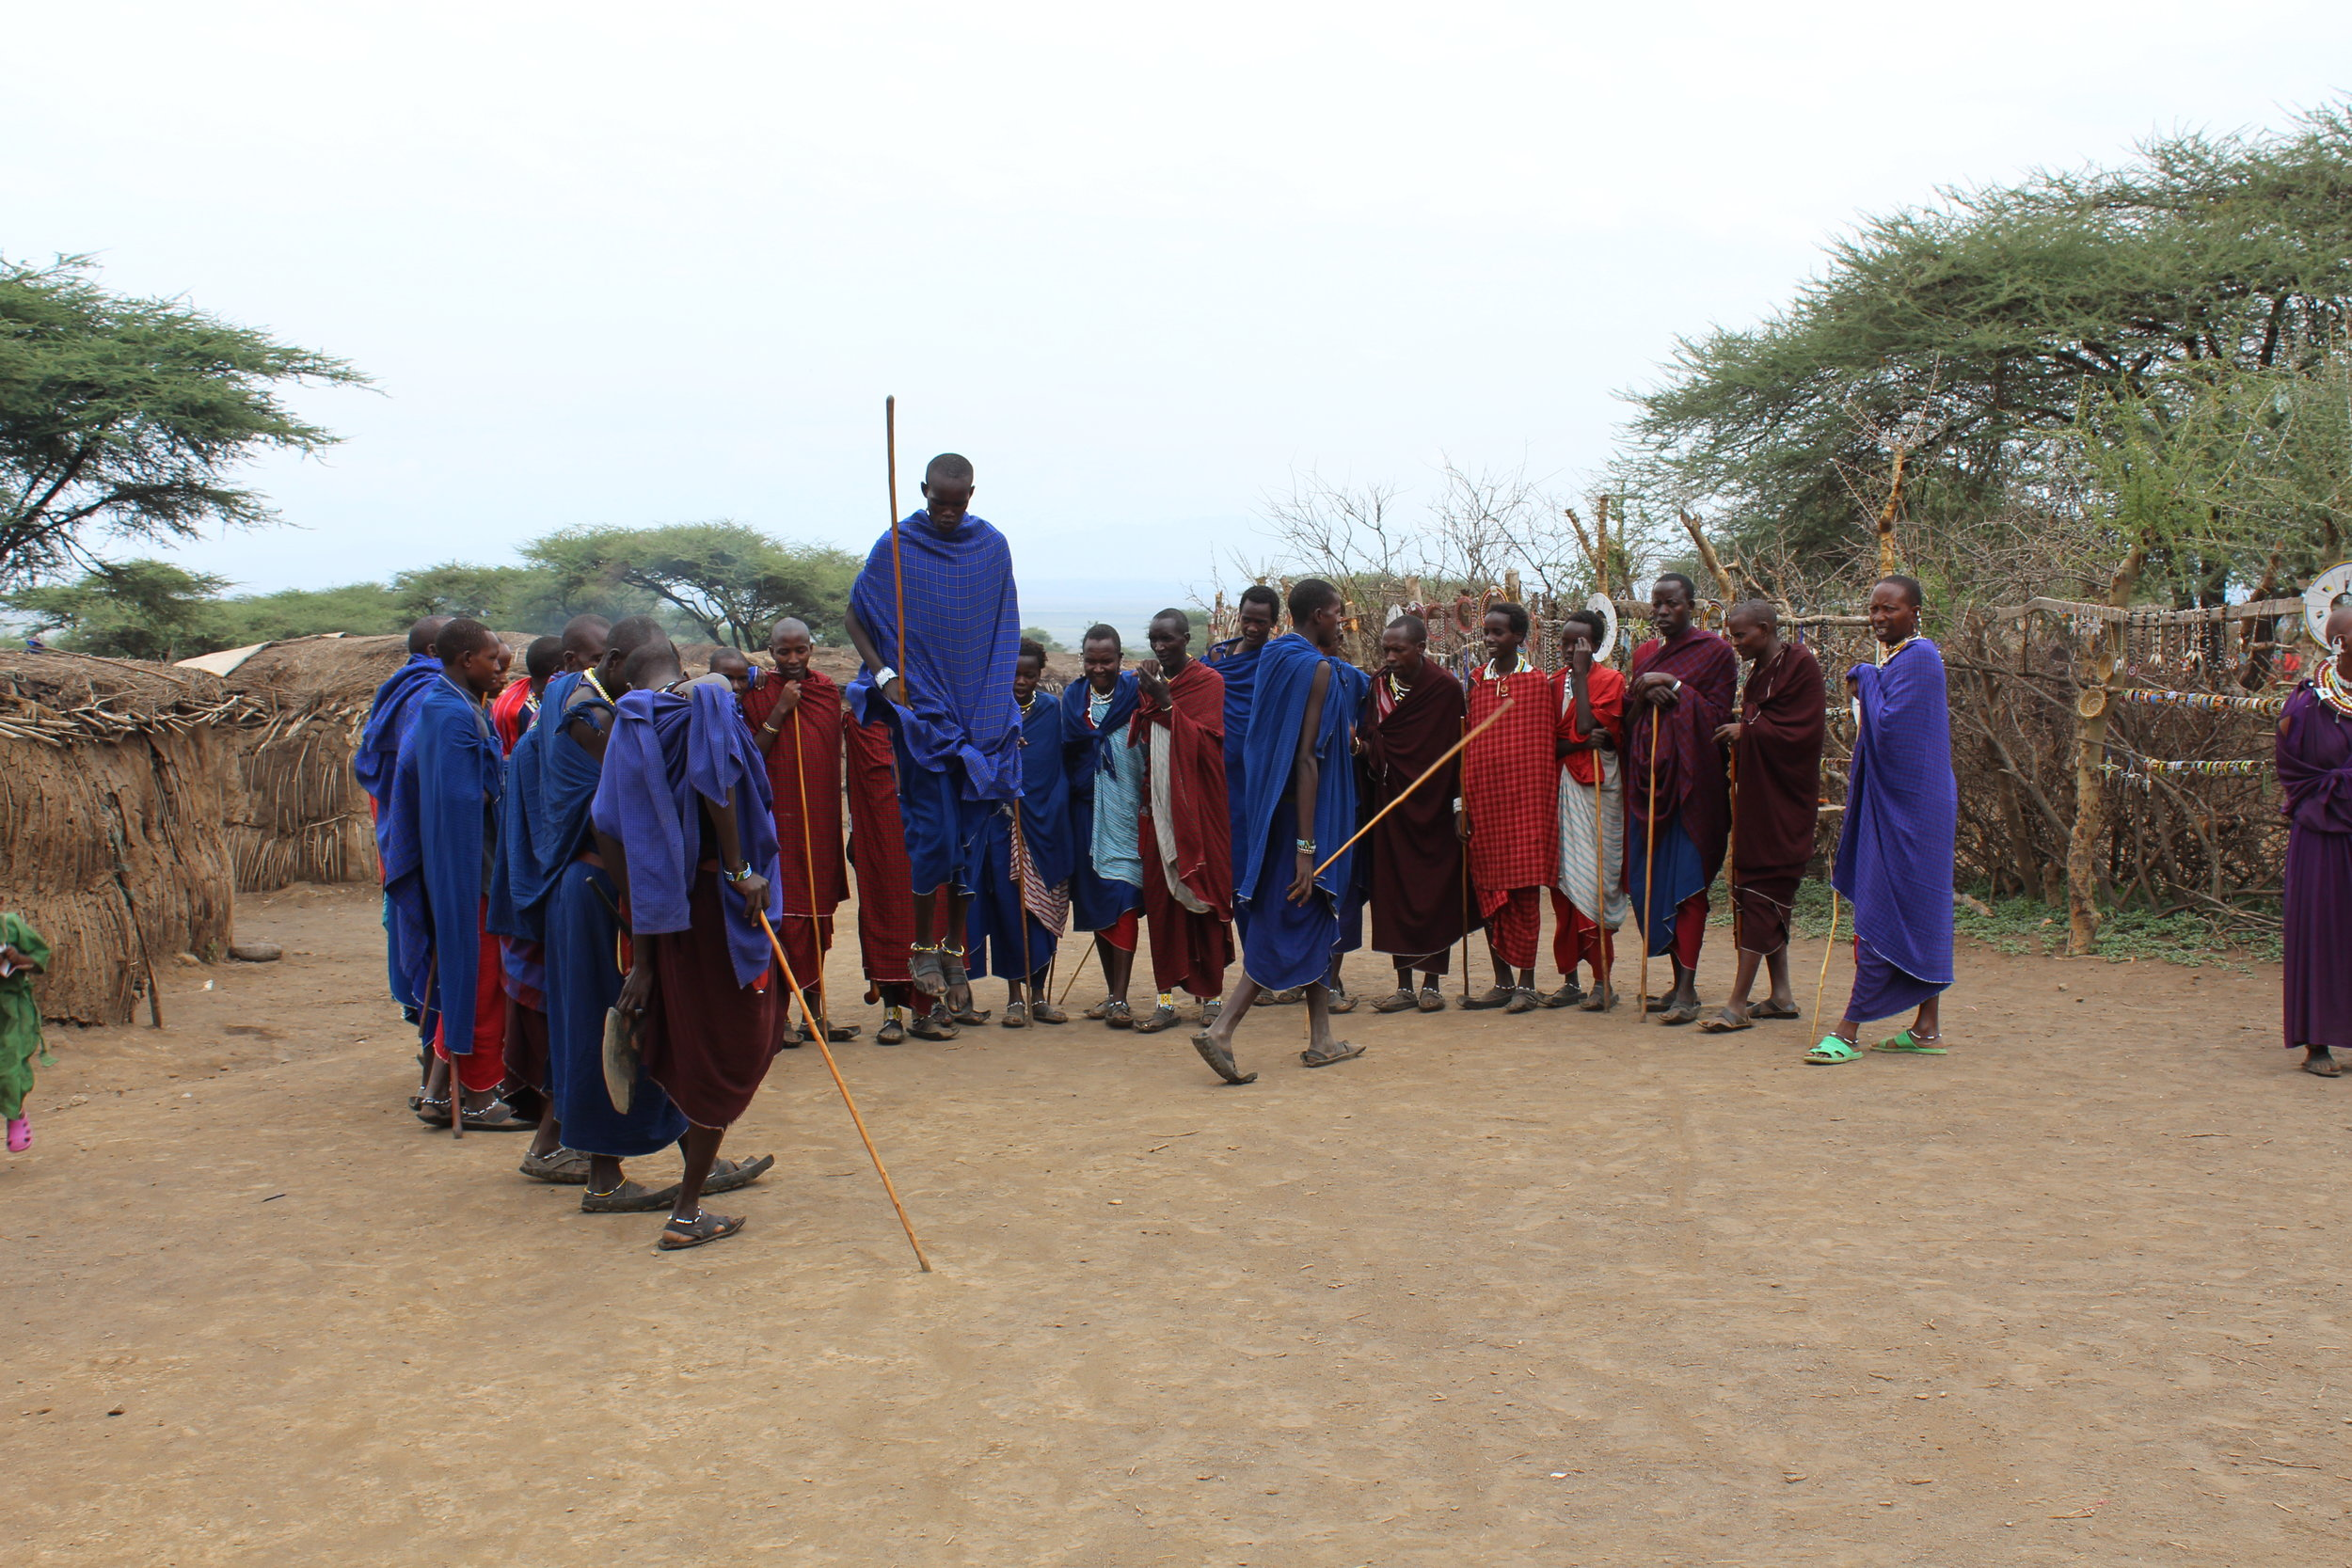 Massai men jumping during their ceremony